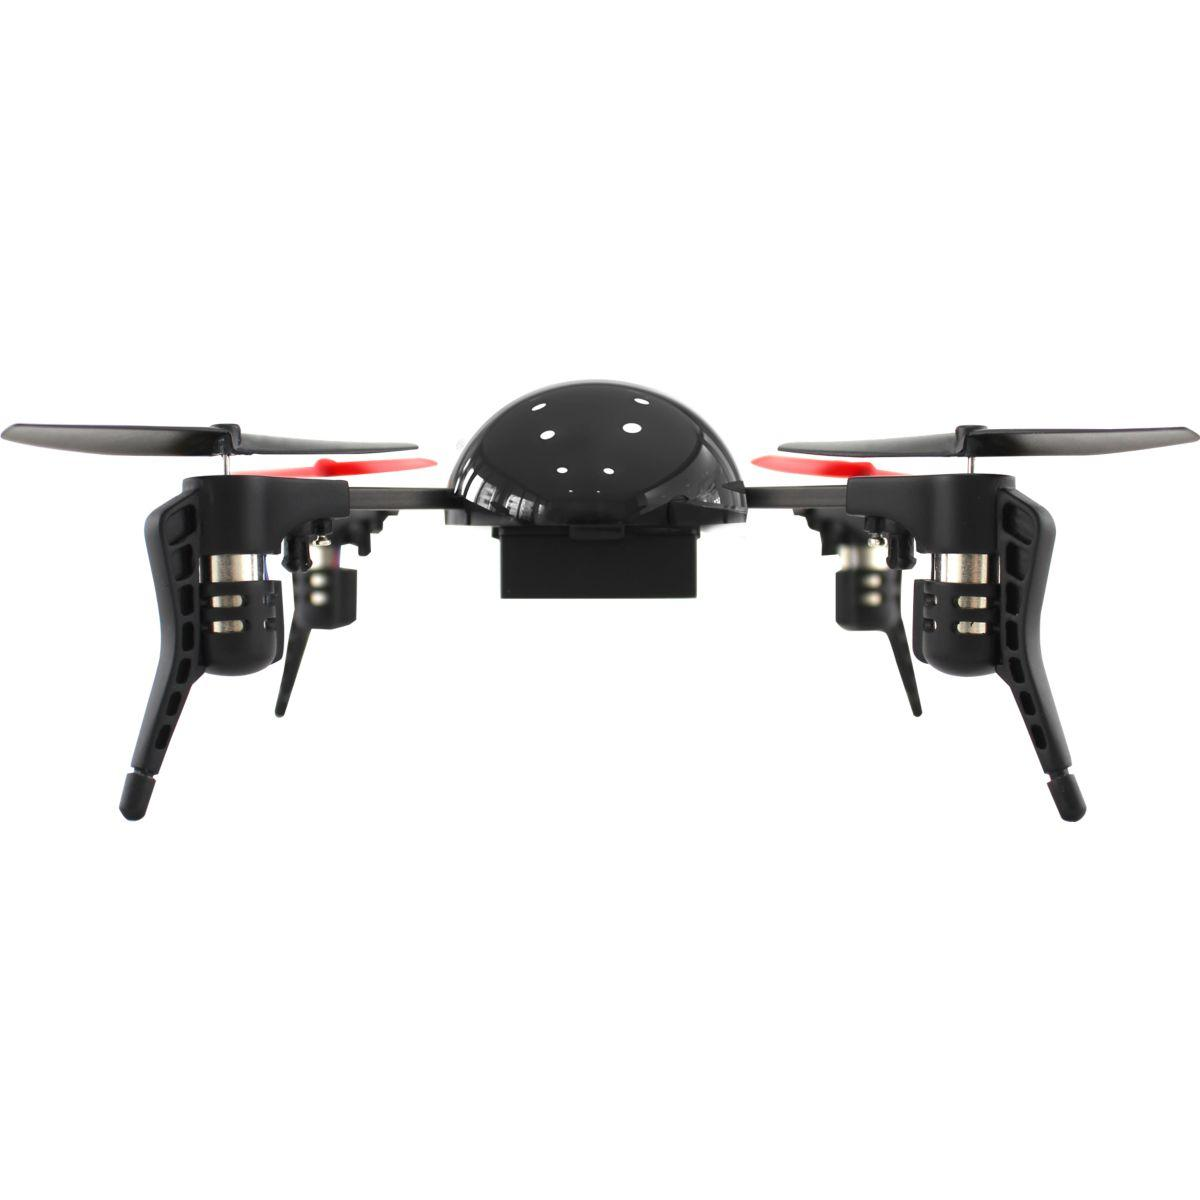 Drone ehang micro drone 3.0 combo pack (photo)